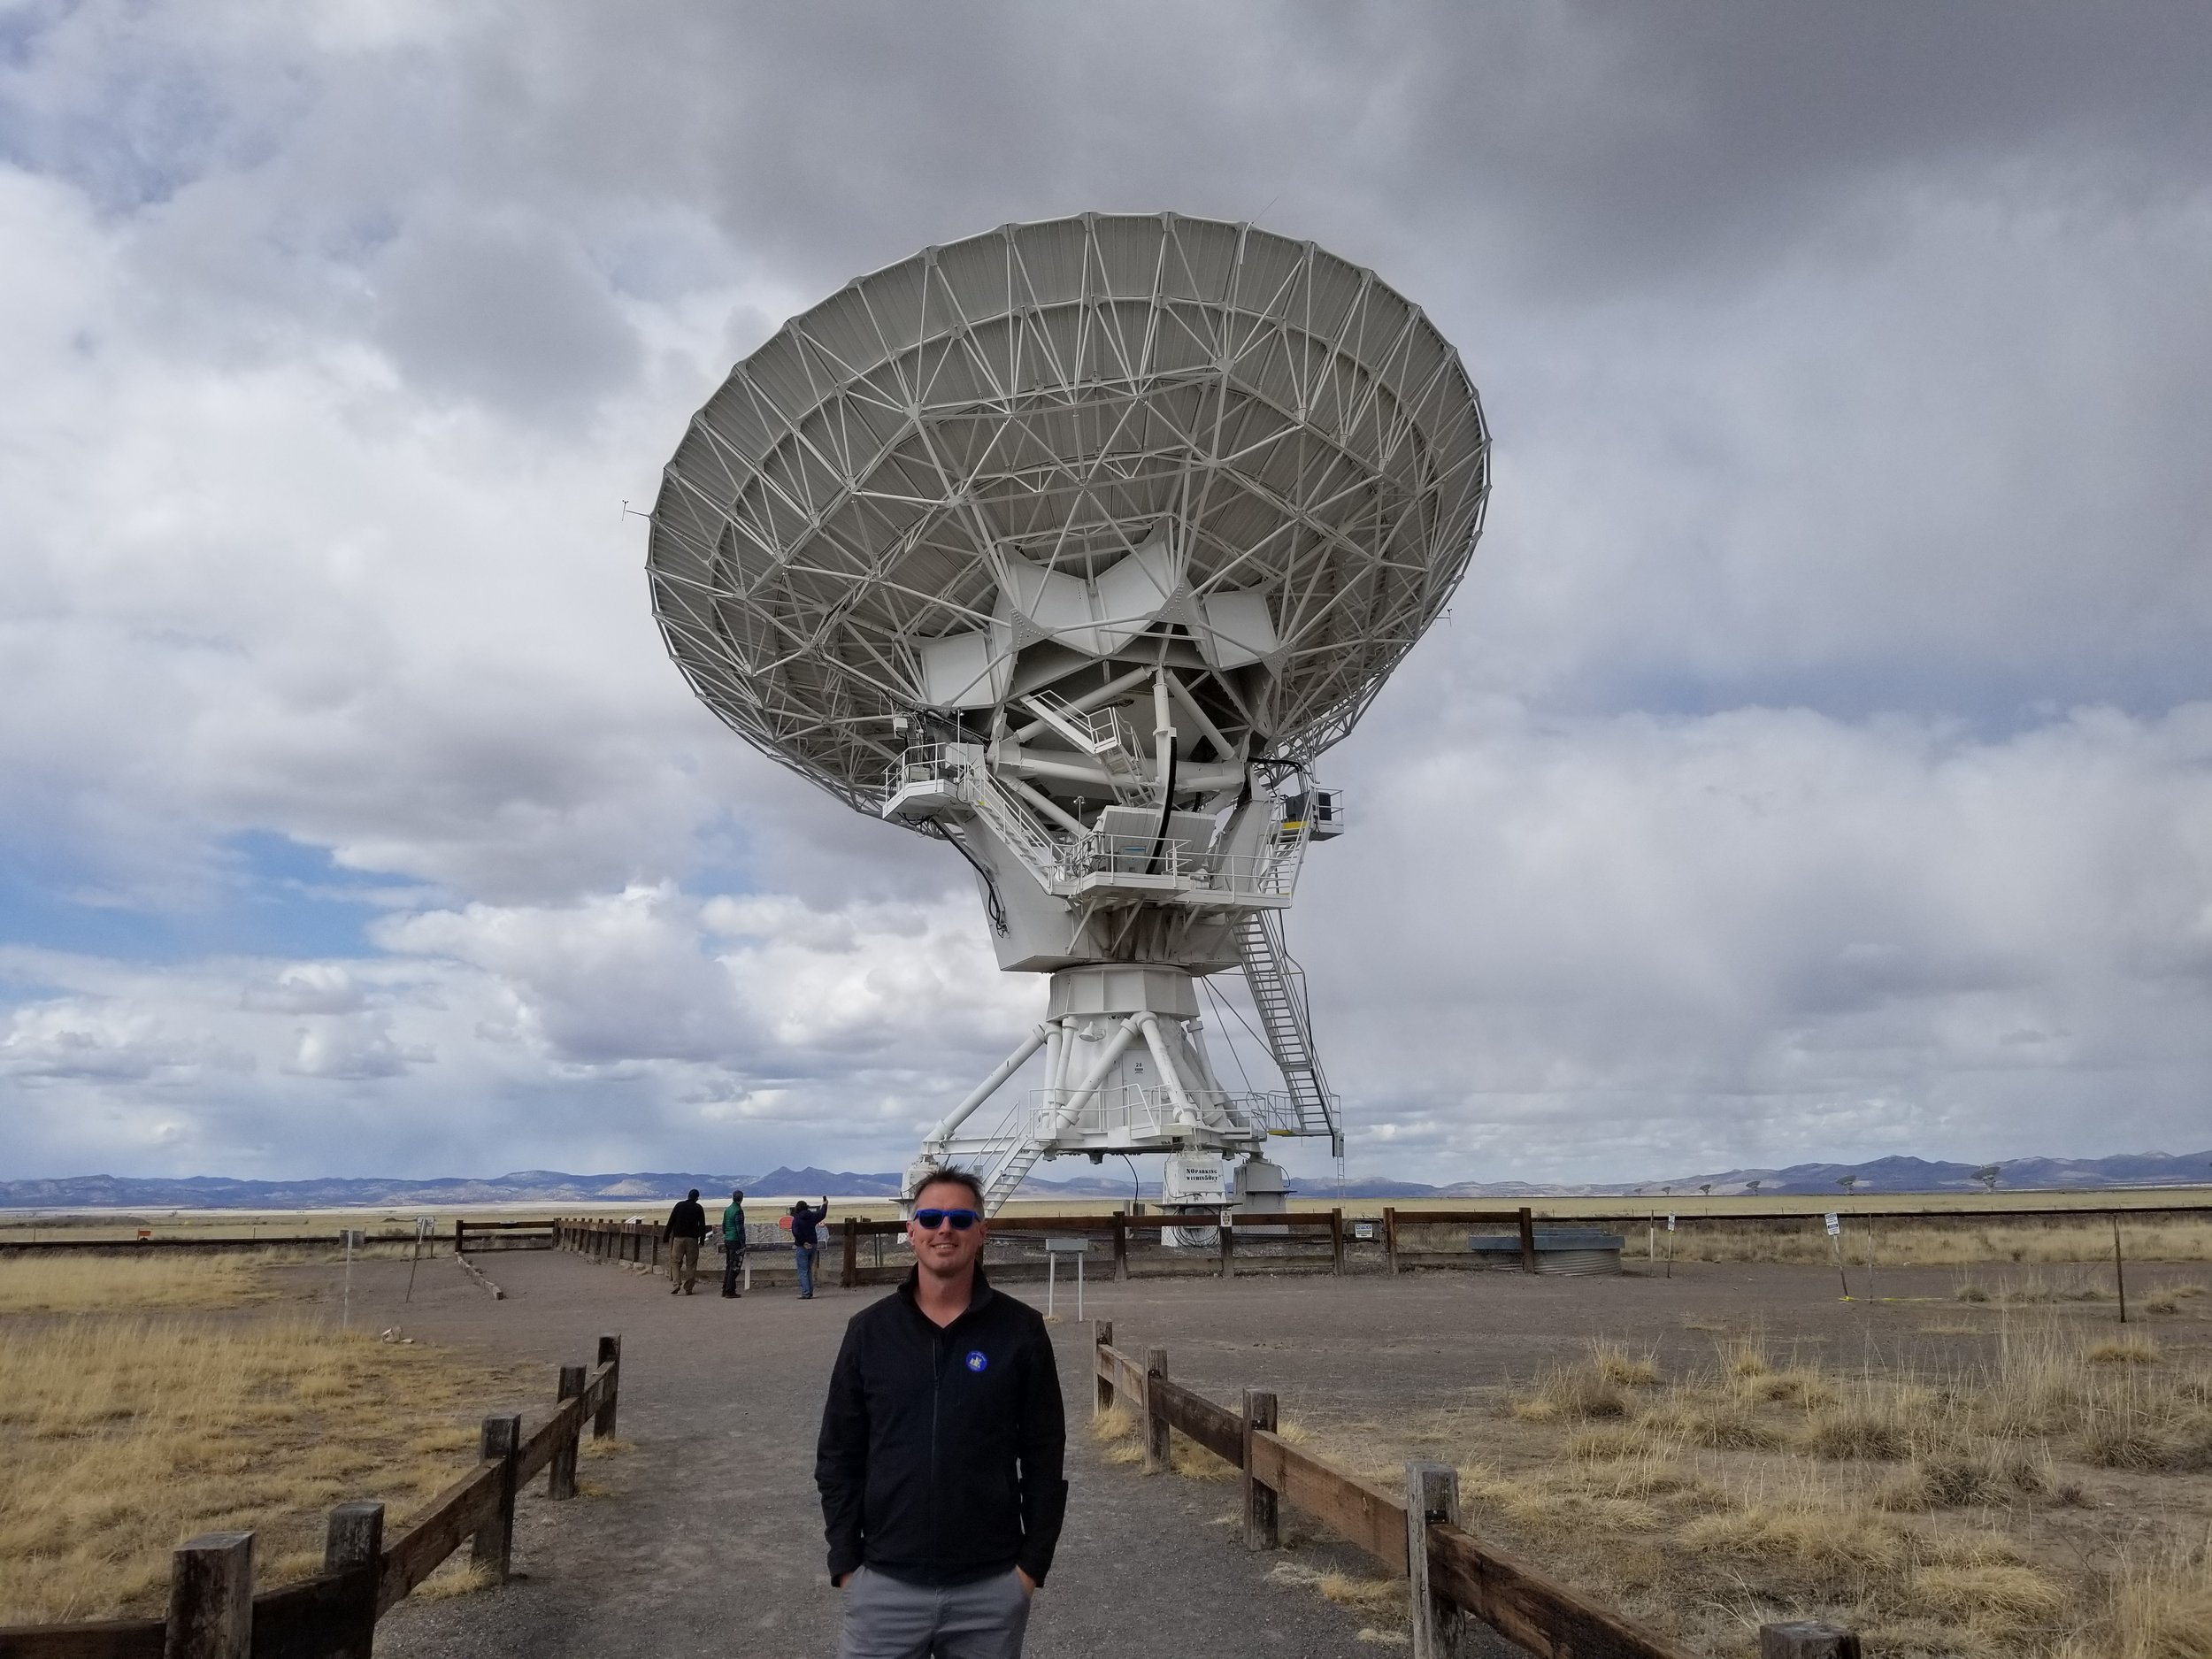 As we were walking up this dish antenna realigned to observe a new object. It was pretty impressive to see it adjust.